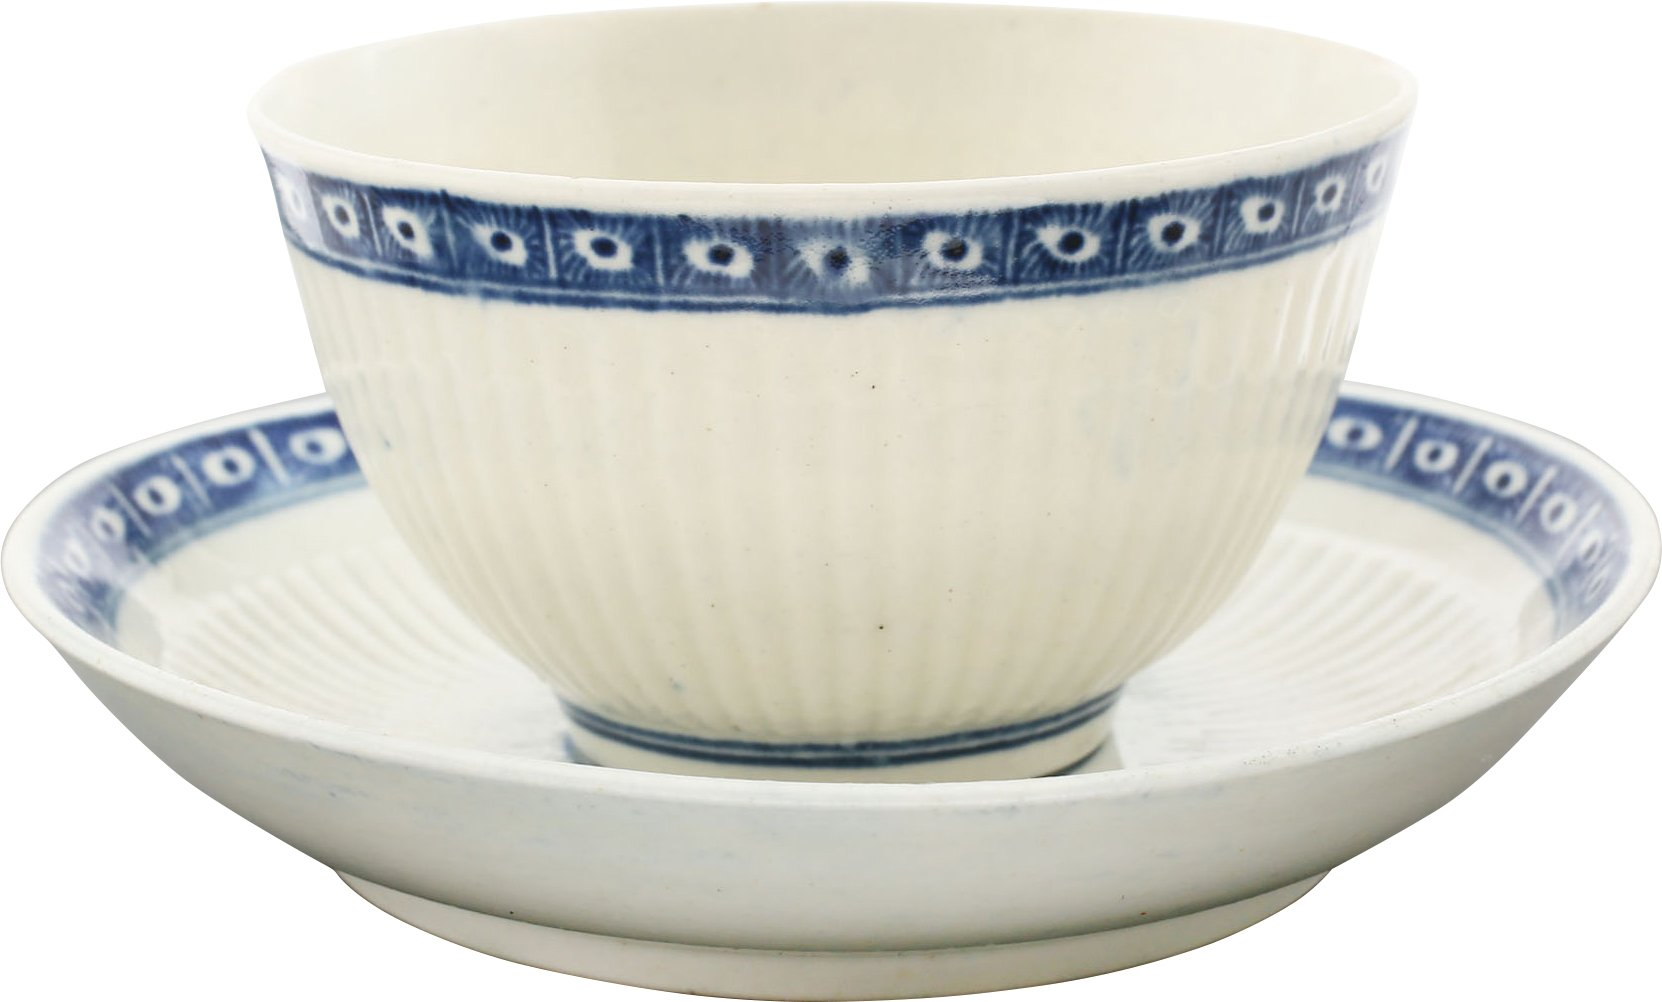 FIRST PERIOD WORCESTER TEA BOWL AND SAUCER. C.1770. - Fagan Arms